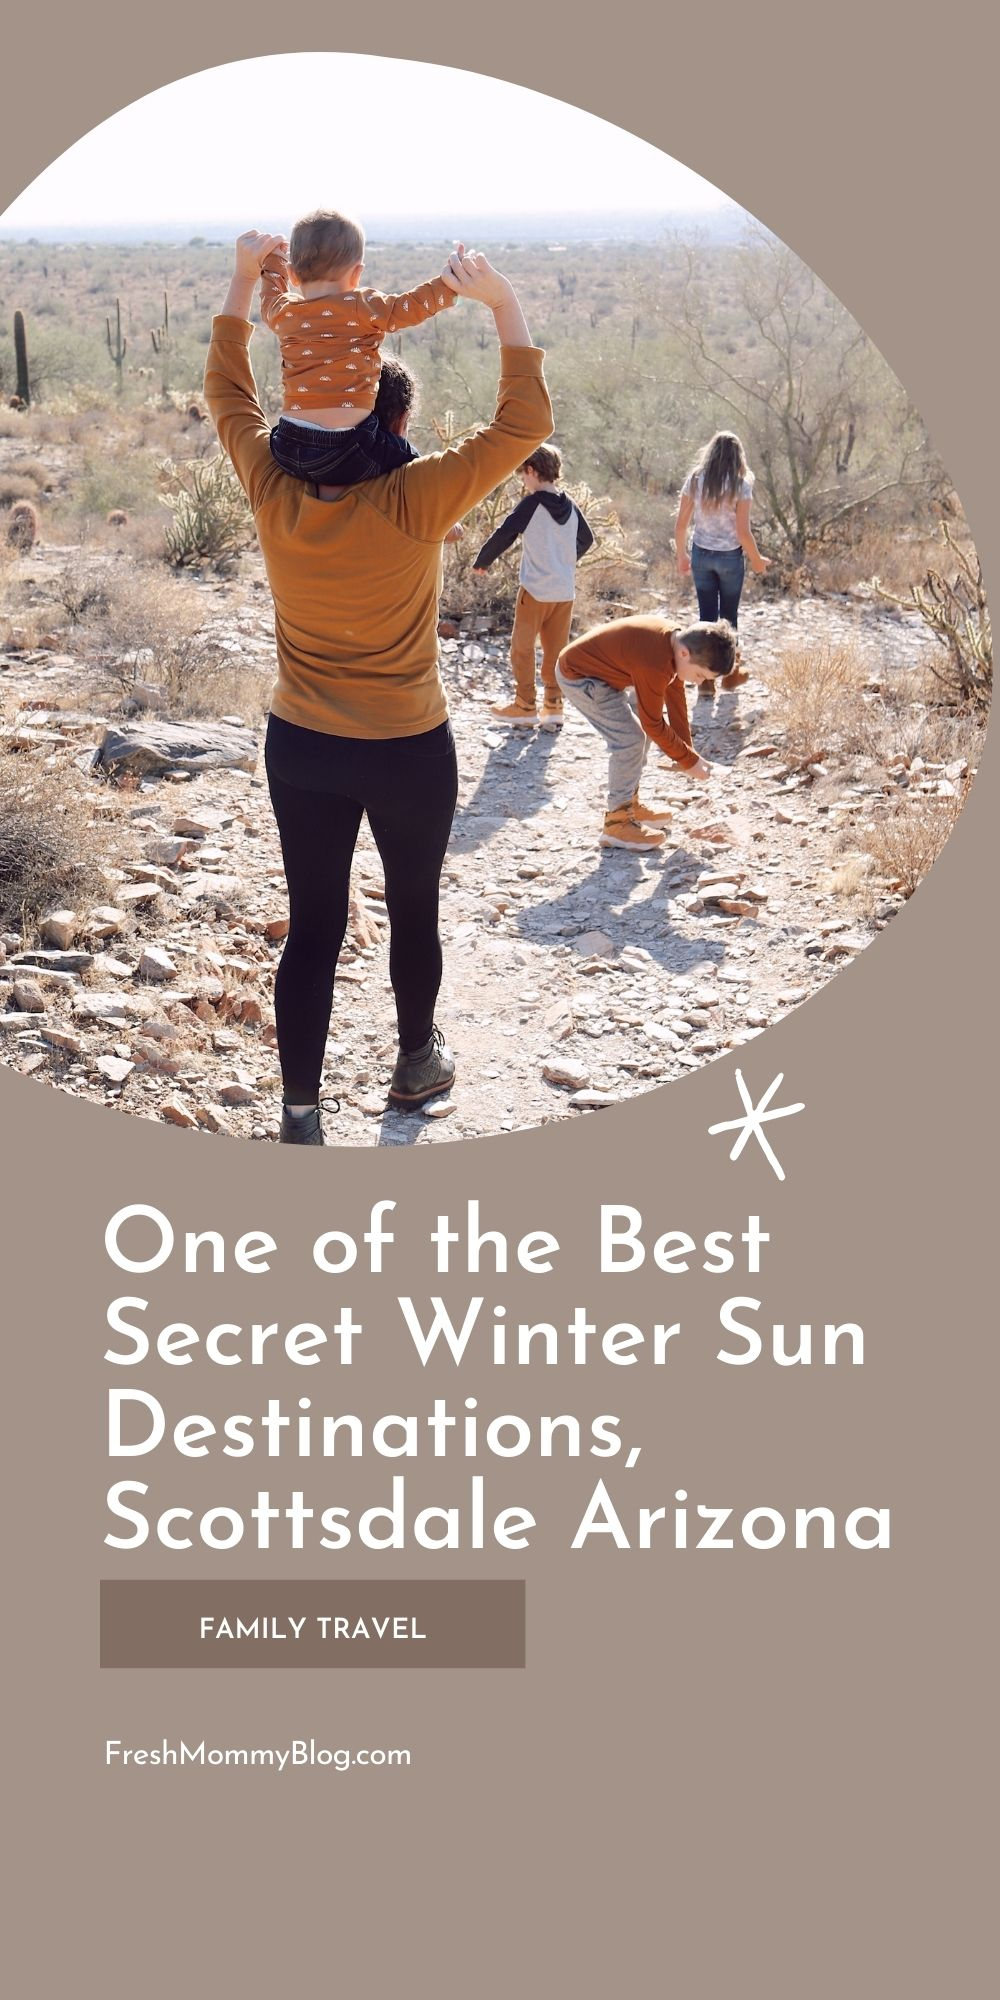 One of the Best Secret Winter Sun Destinations + Ultimate Family Friendly Guide to Scottsdale Arizona